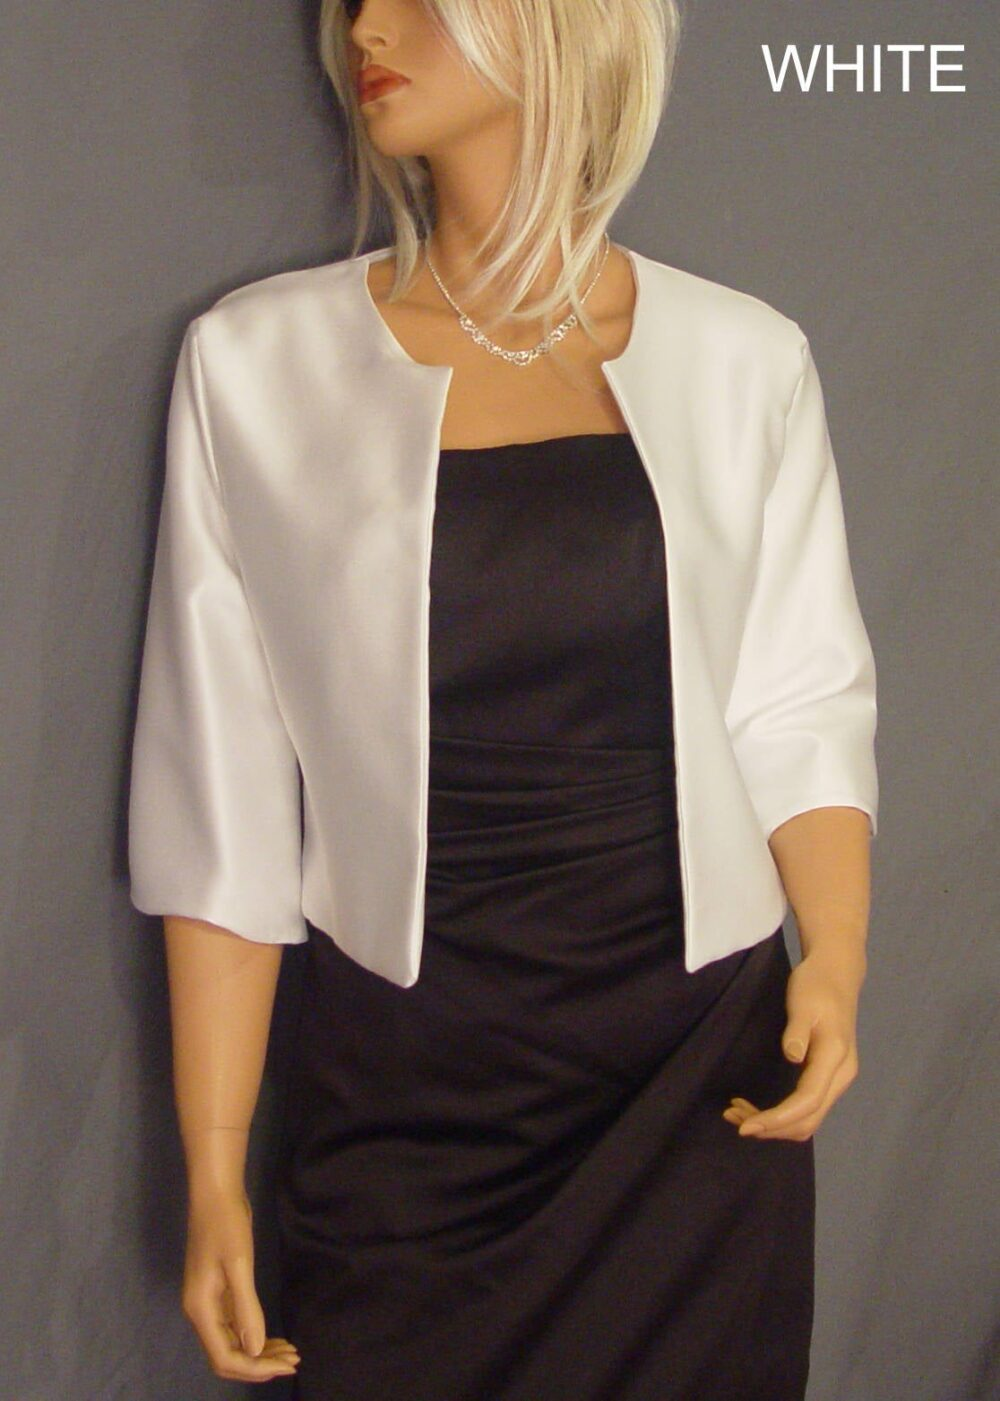 Satin Jacket With 3/4 Sleeves Hip Length Bolero Wedding Shrug Coat Cover Up Blouse Wrap Sba129 Available in White & 5 Other Colors